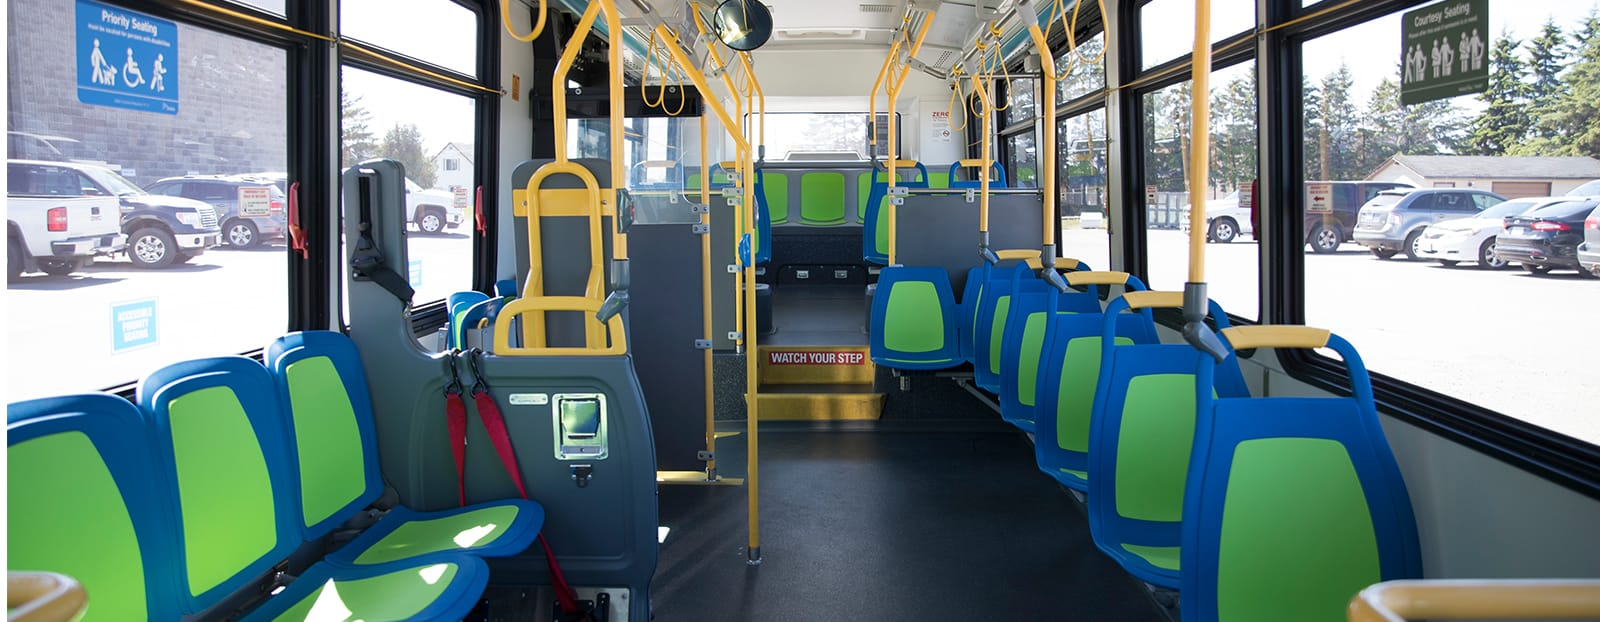 inside of thunder bay city bus